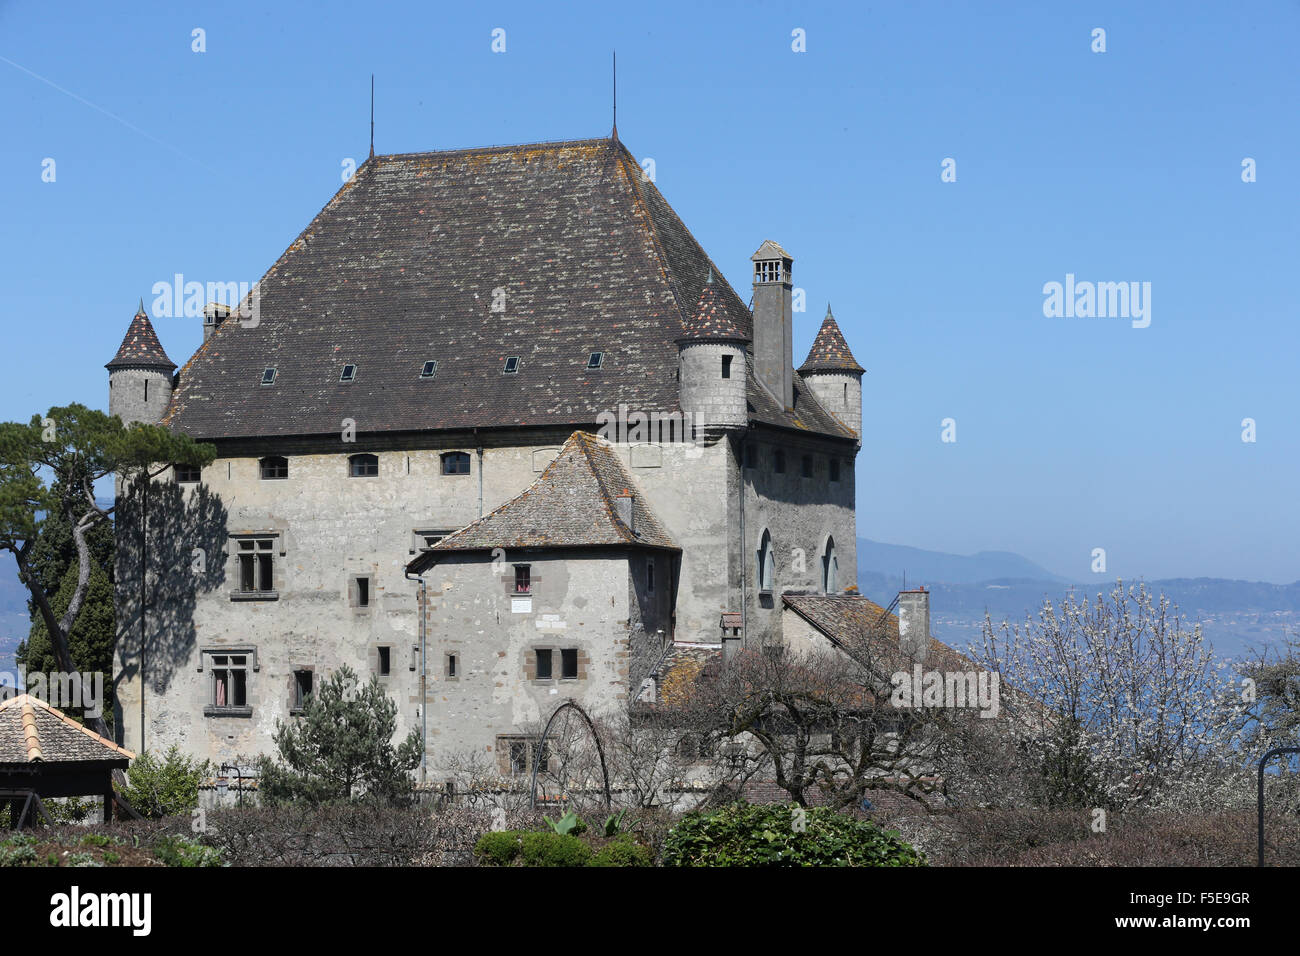 Yvoire, Lake Geneva, the Castle dating from the 14th century, Yvoire, Haute-Savoie, France, Europe Stock Photo